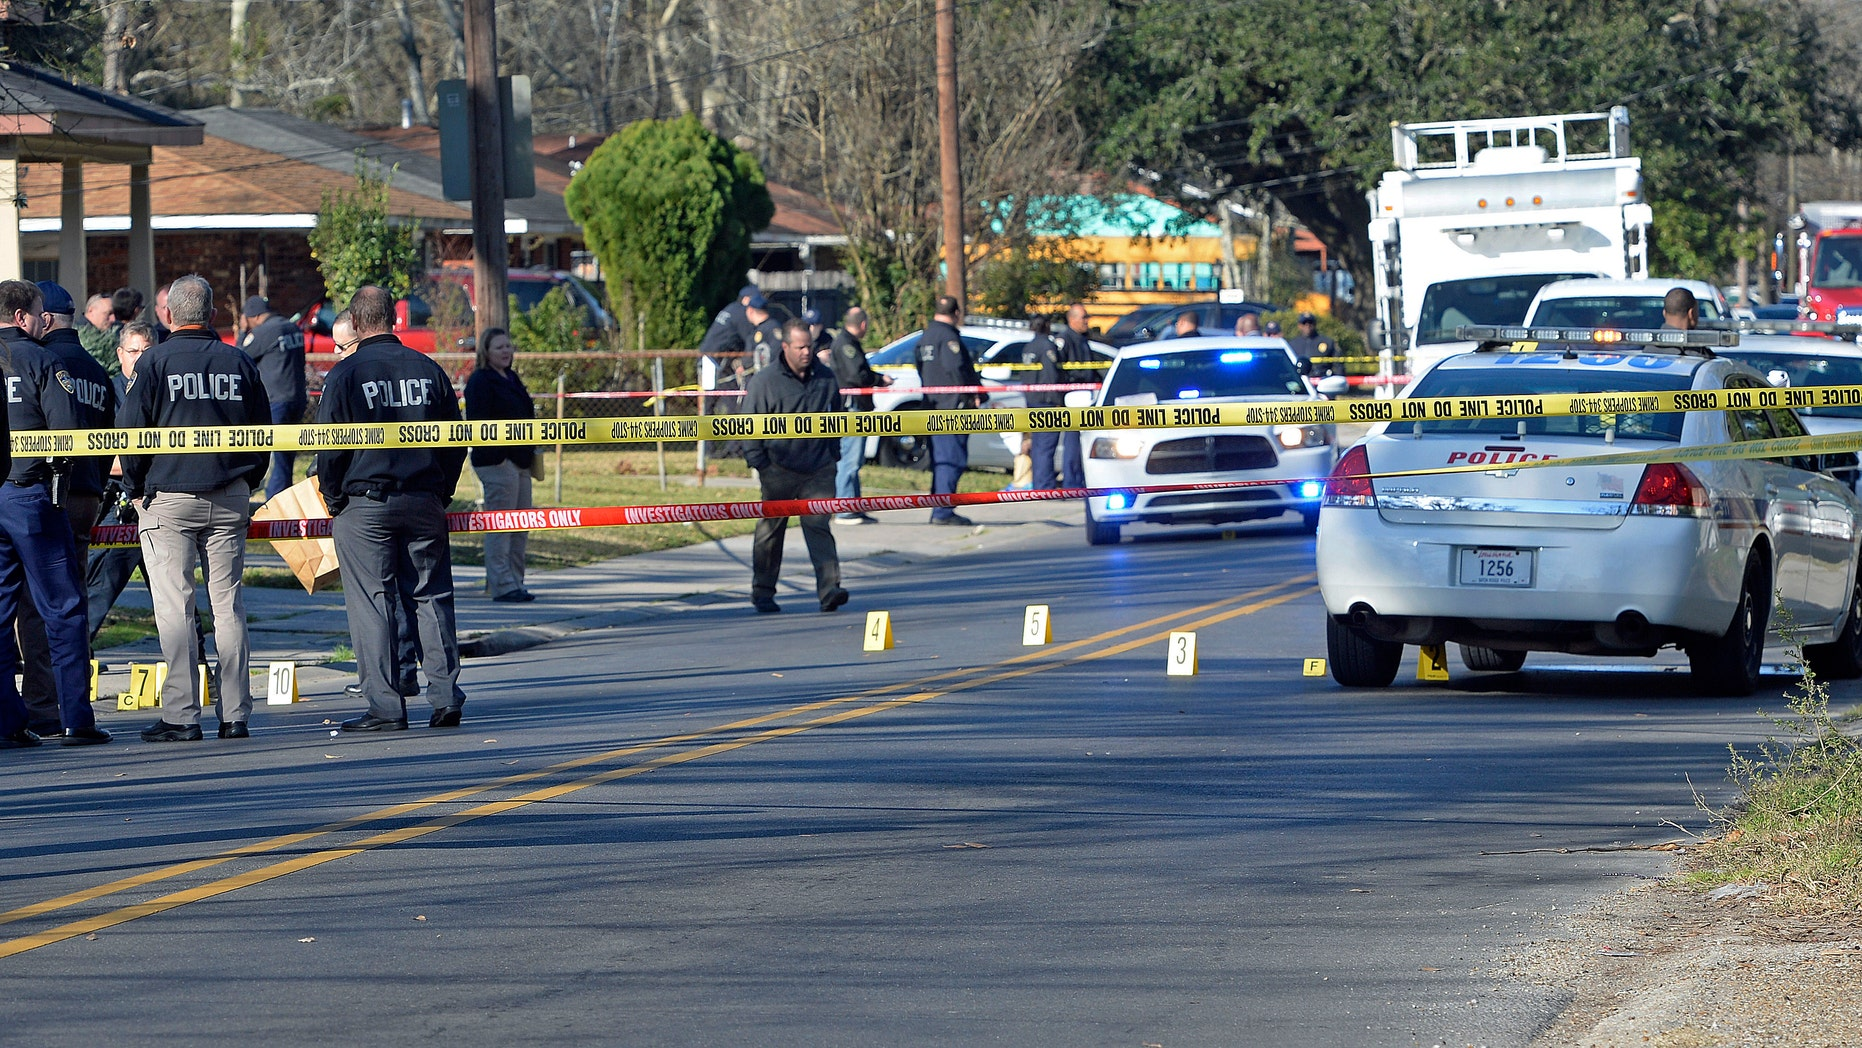 Officers investigating the shooting scene on Saturday.